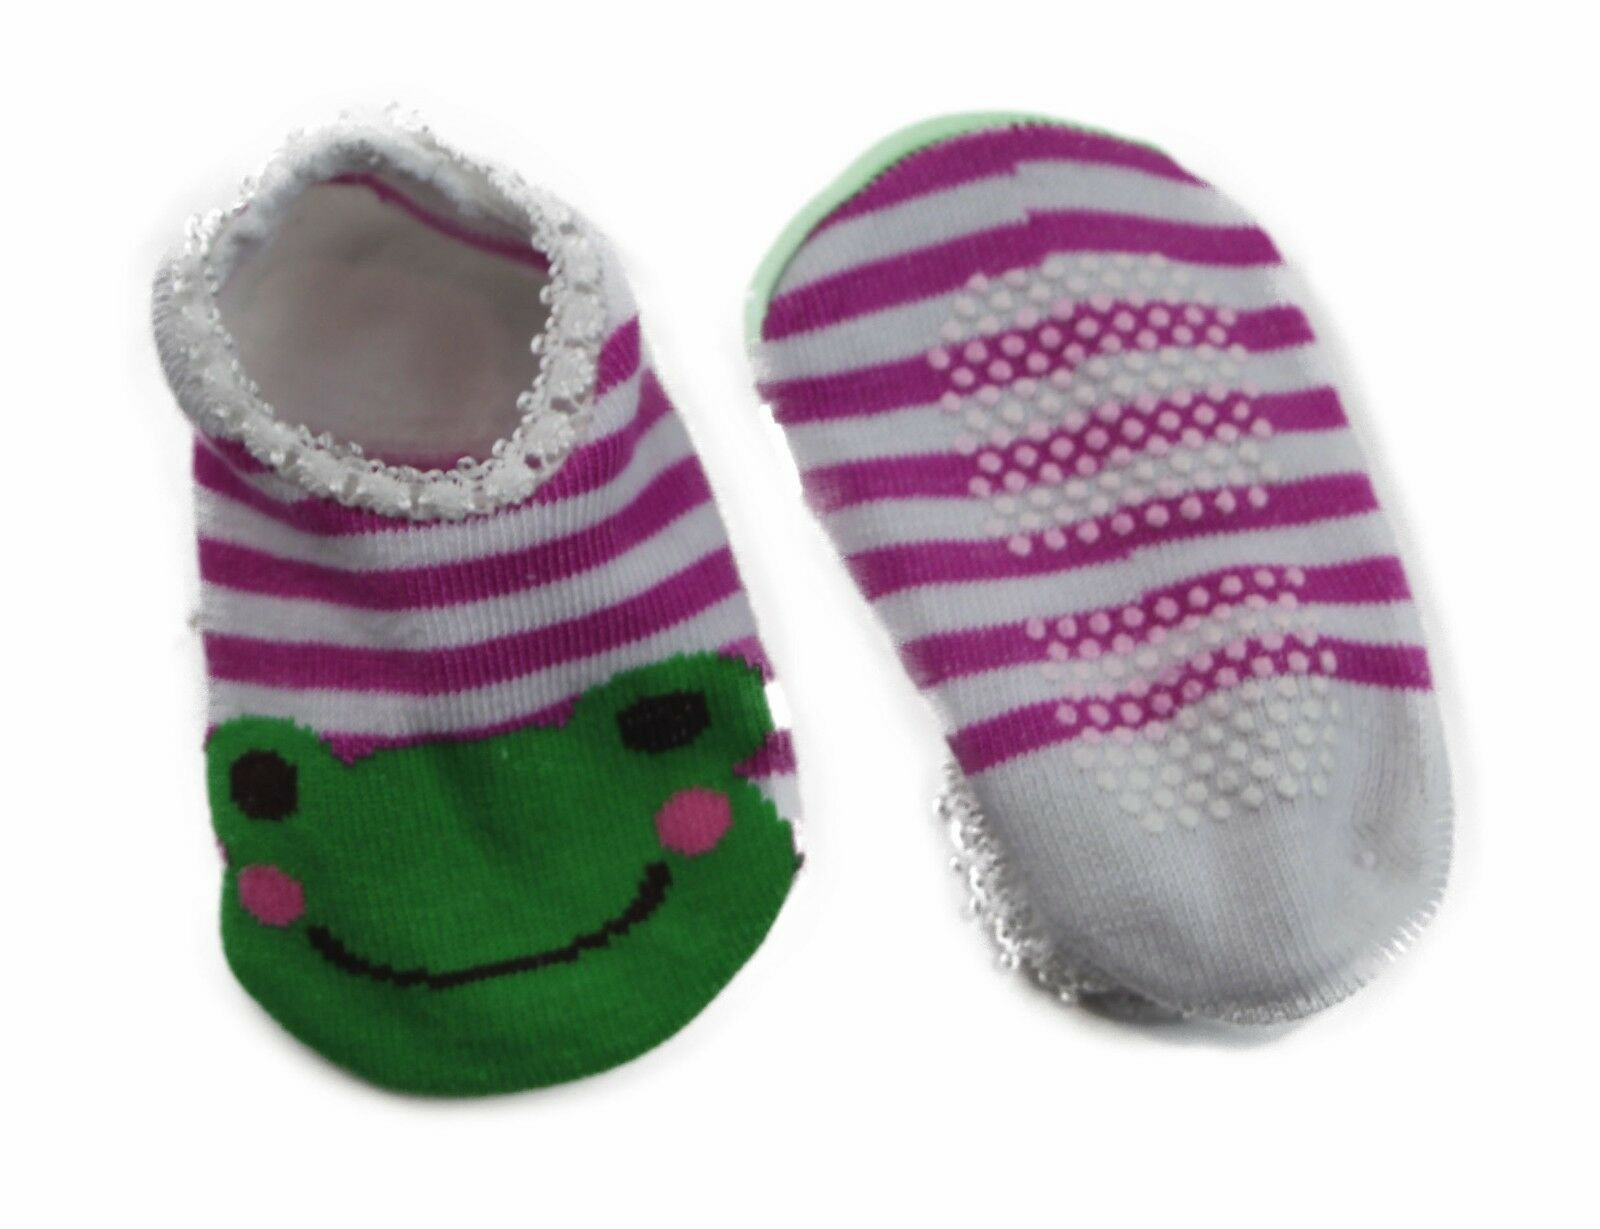 thumbnail 25 - Baby Footlets Kids Toddler Cotton Socks Anti Slip Grip Boys Girls 6-18 Months